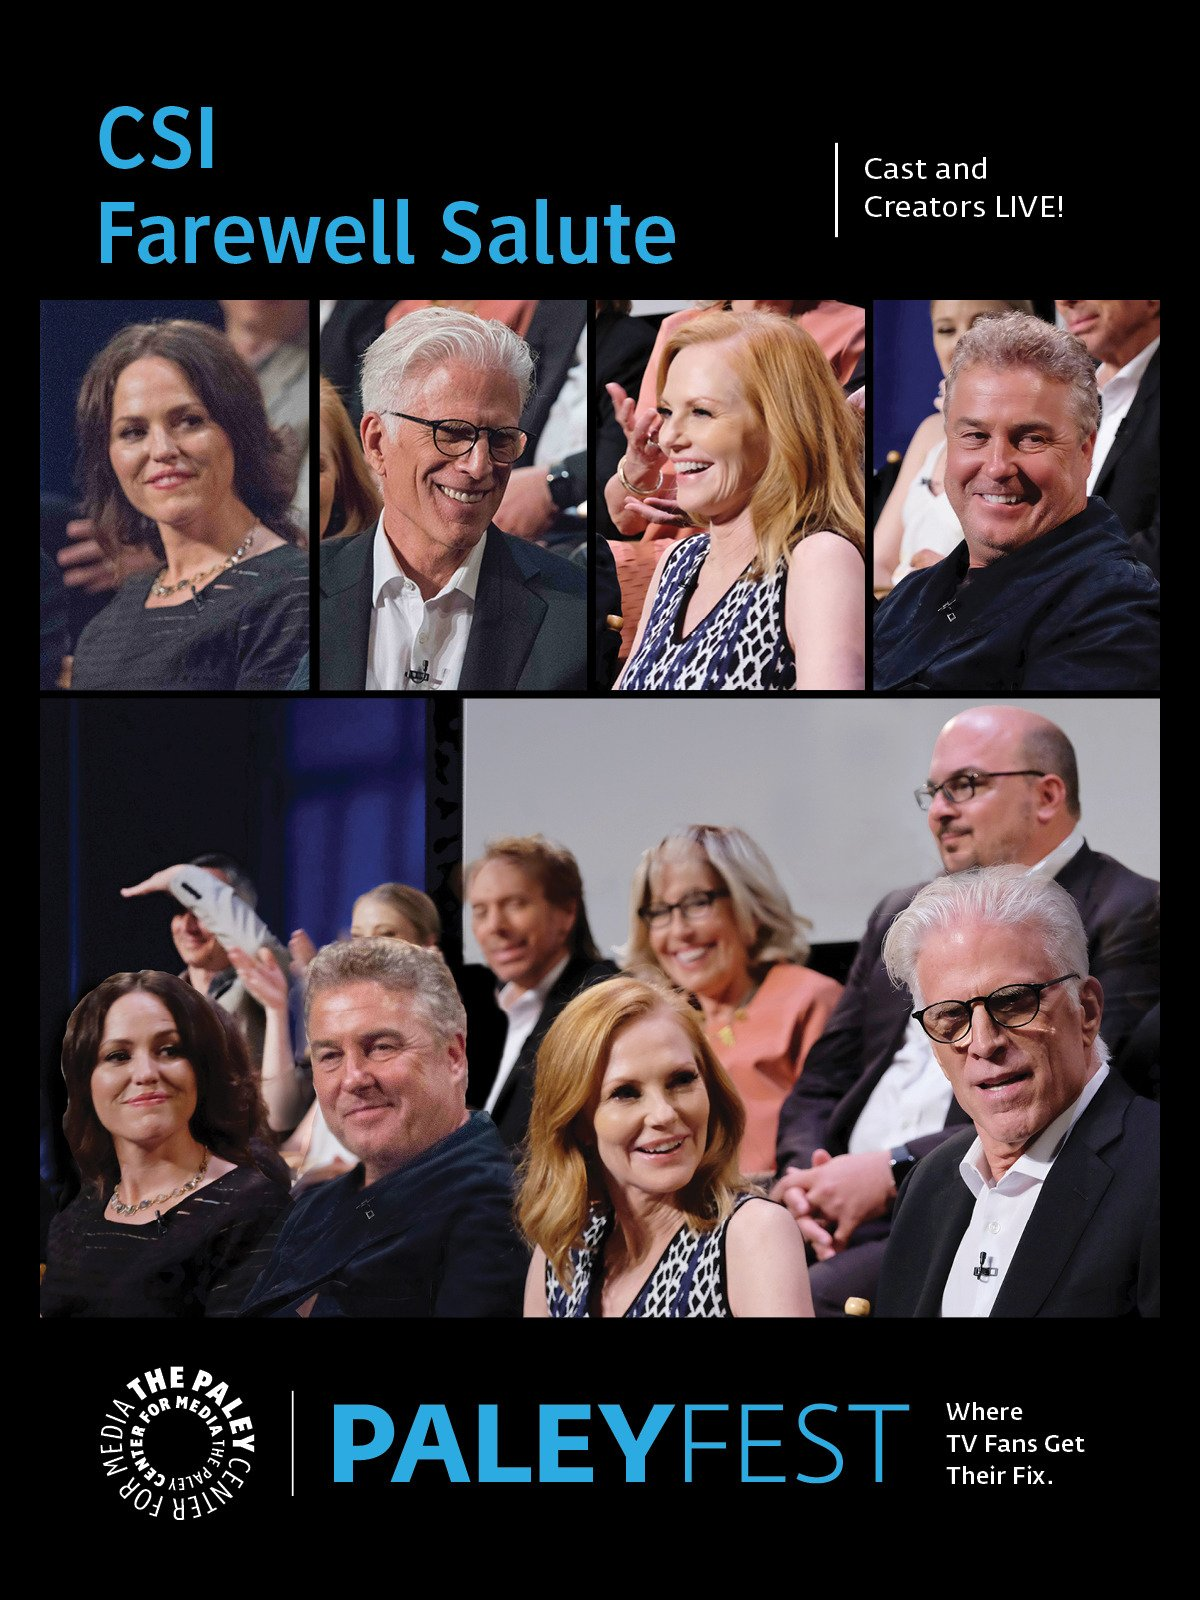 CSI Farewell Salute: Cast and Creators PaleyFest